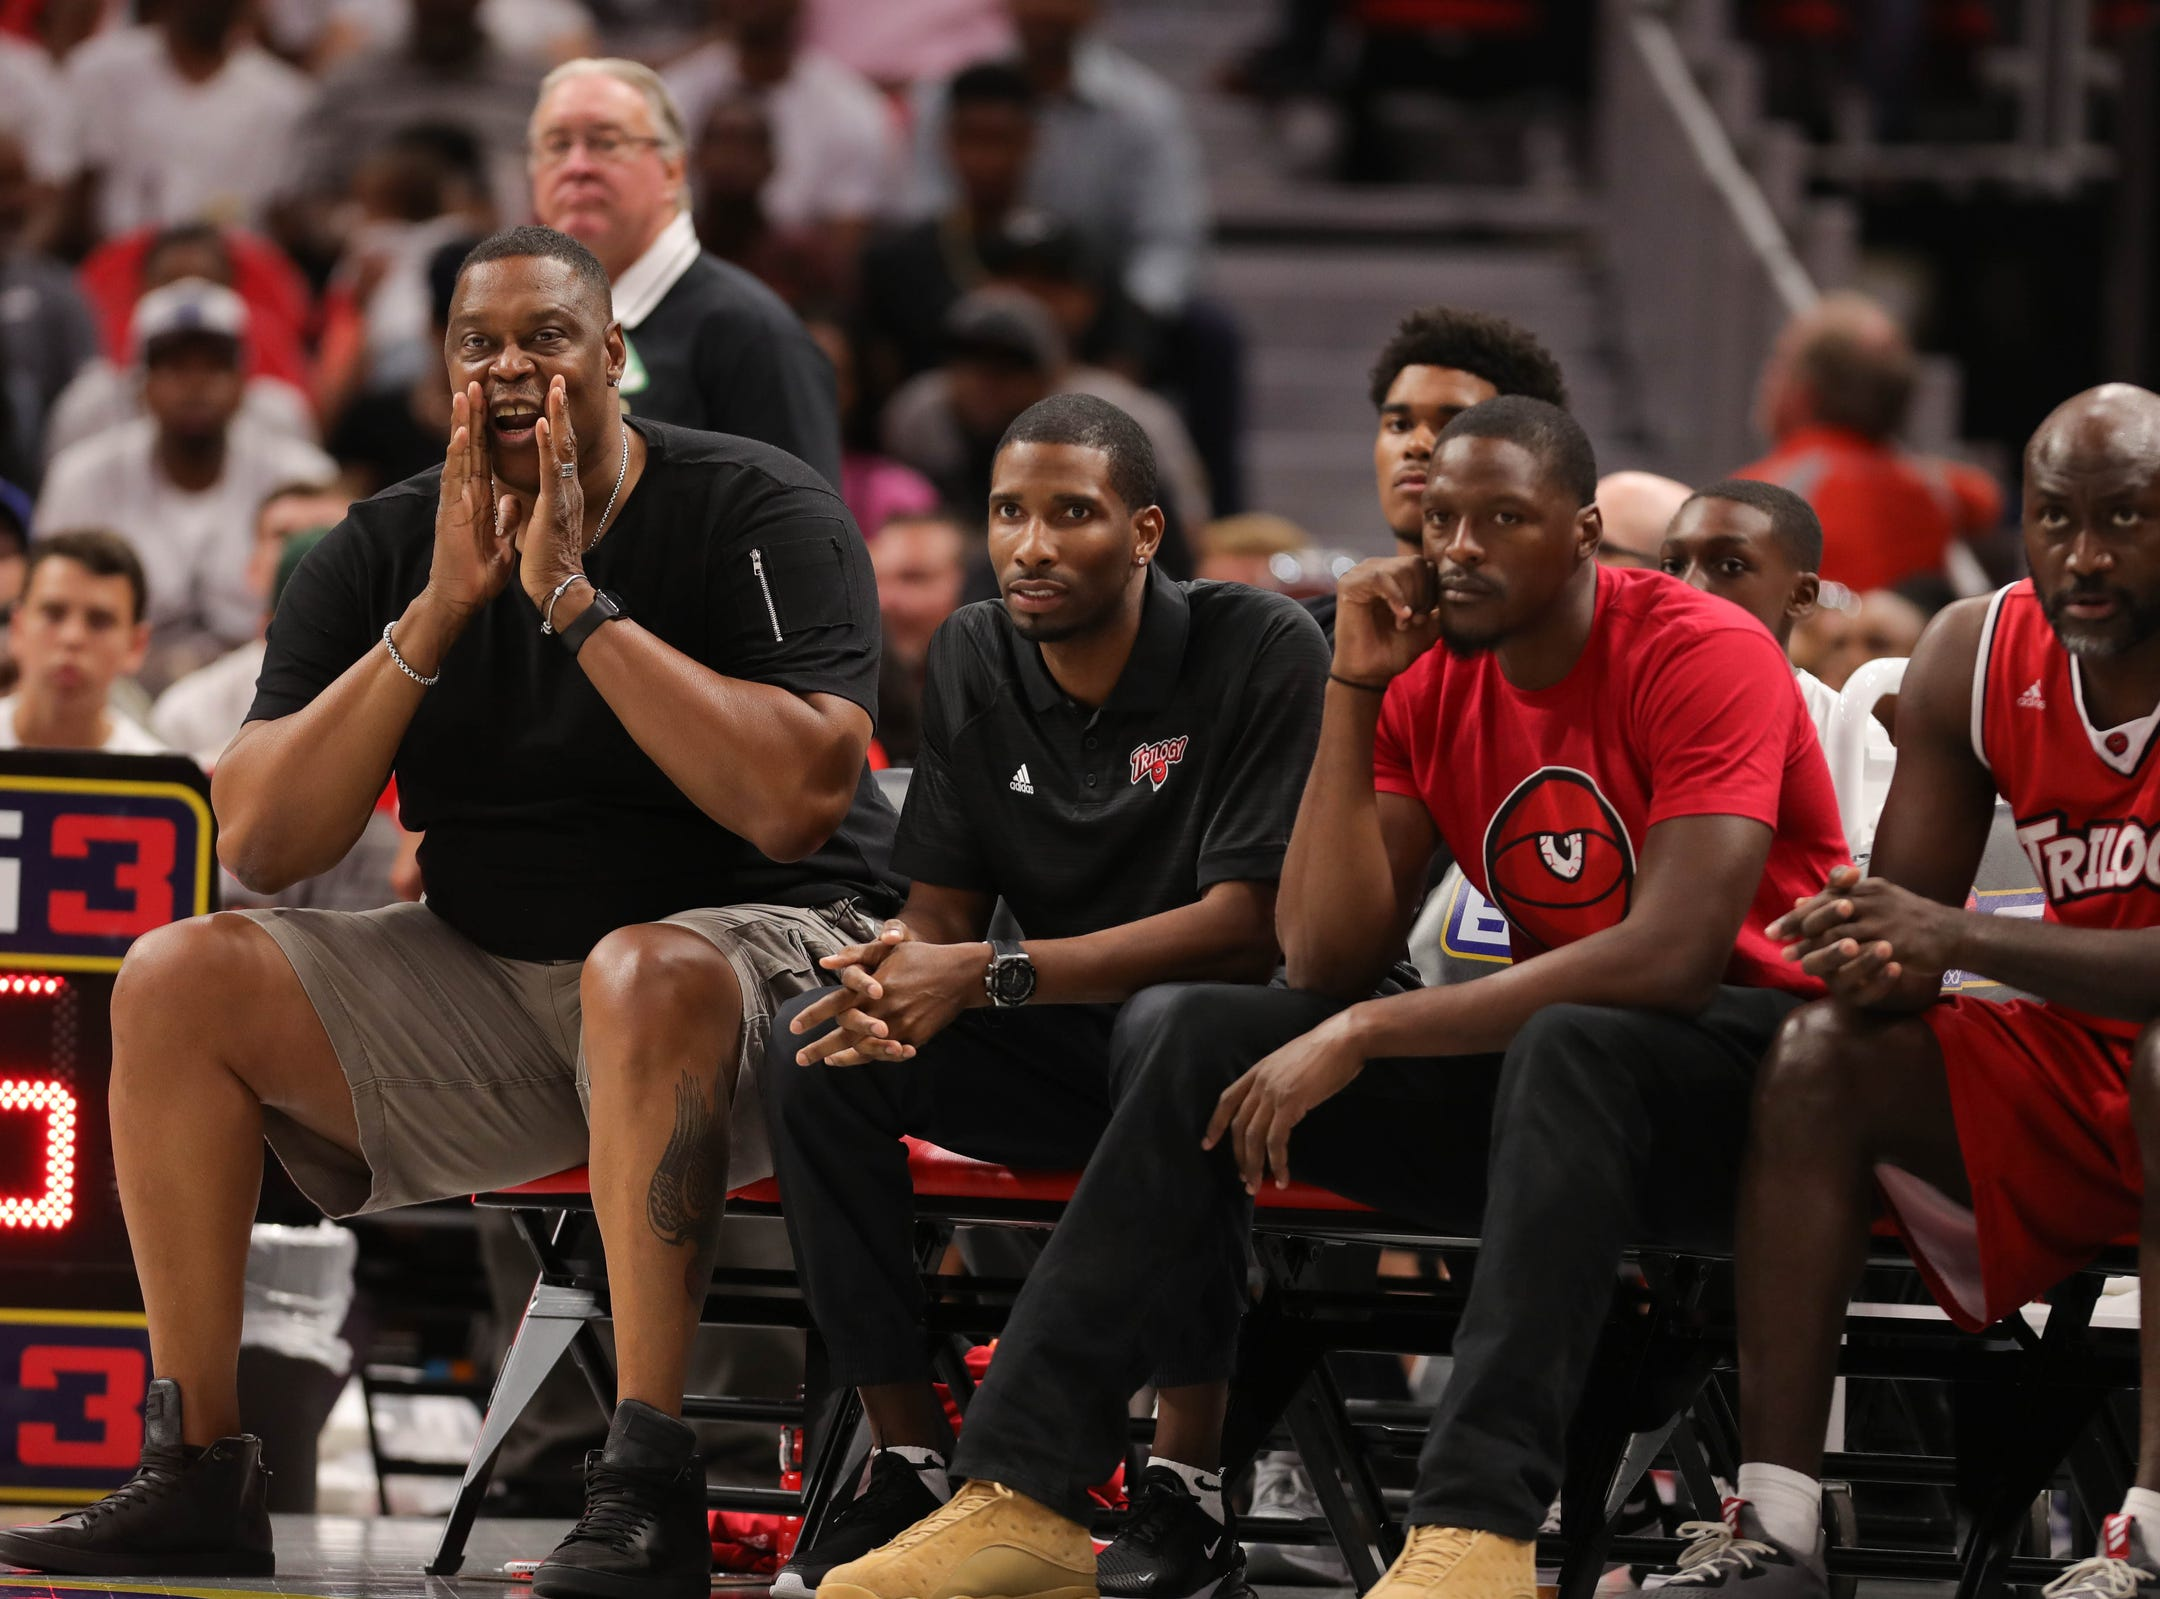 Trilogy coach Rick Mahorn on the bench during BIG3 action against the Killer 3s Friday, July 13, 2018 at Little Caesars Arena in Detroit.